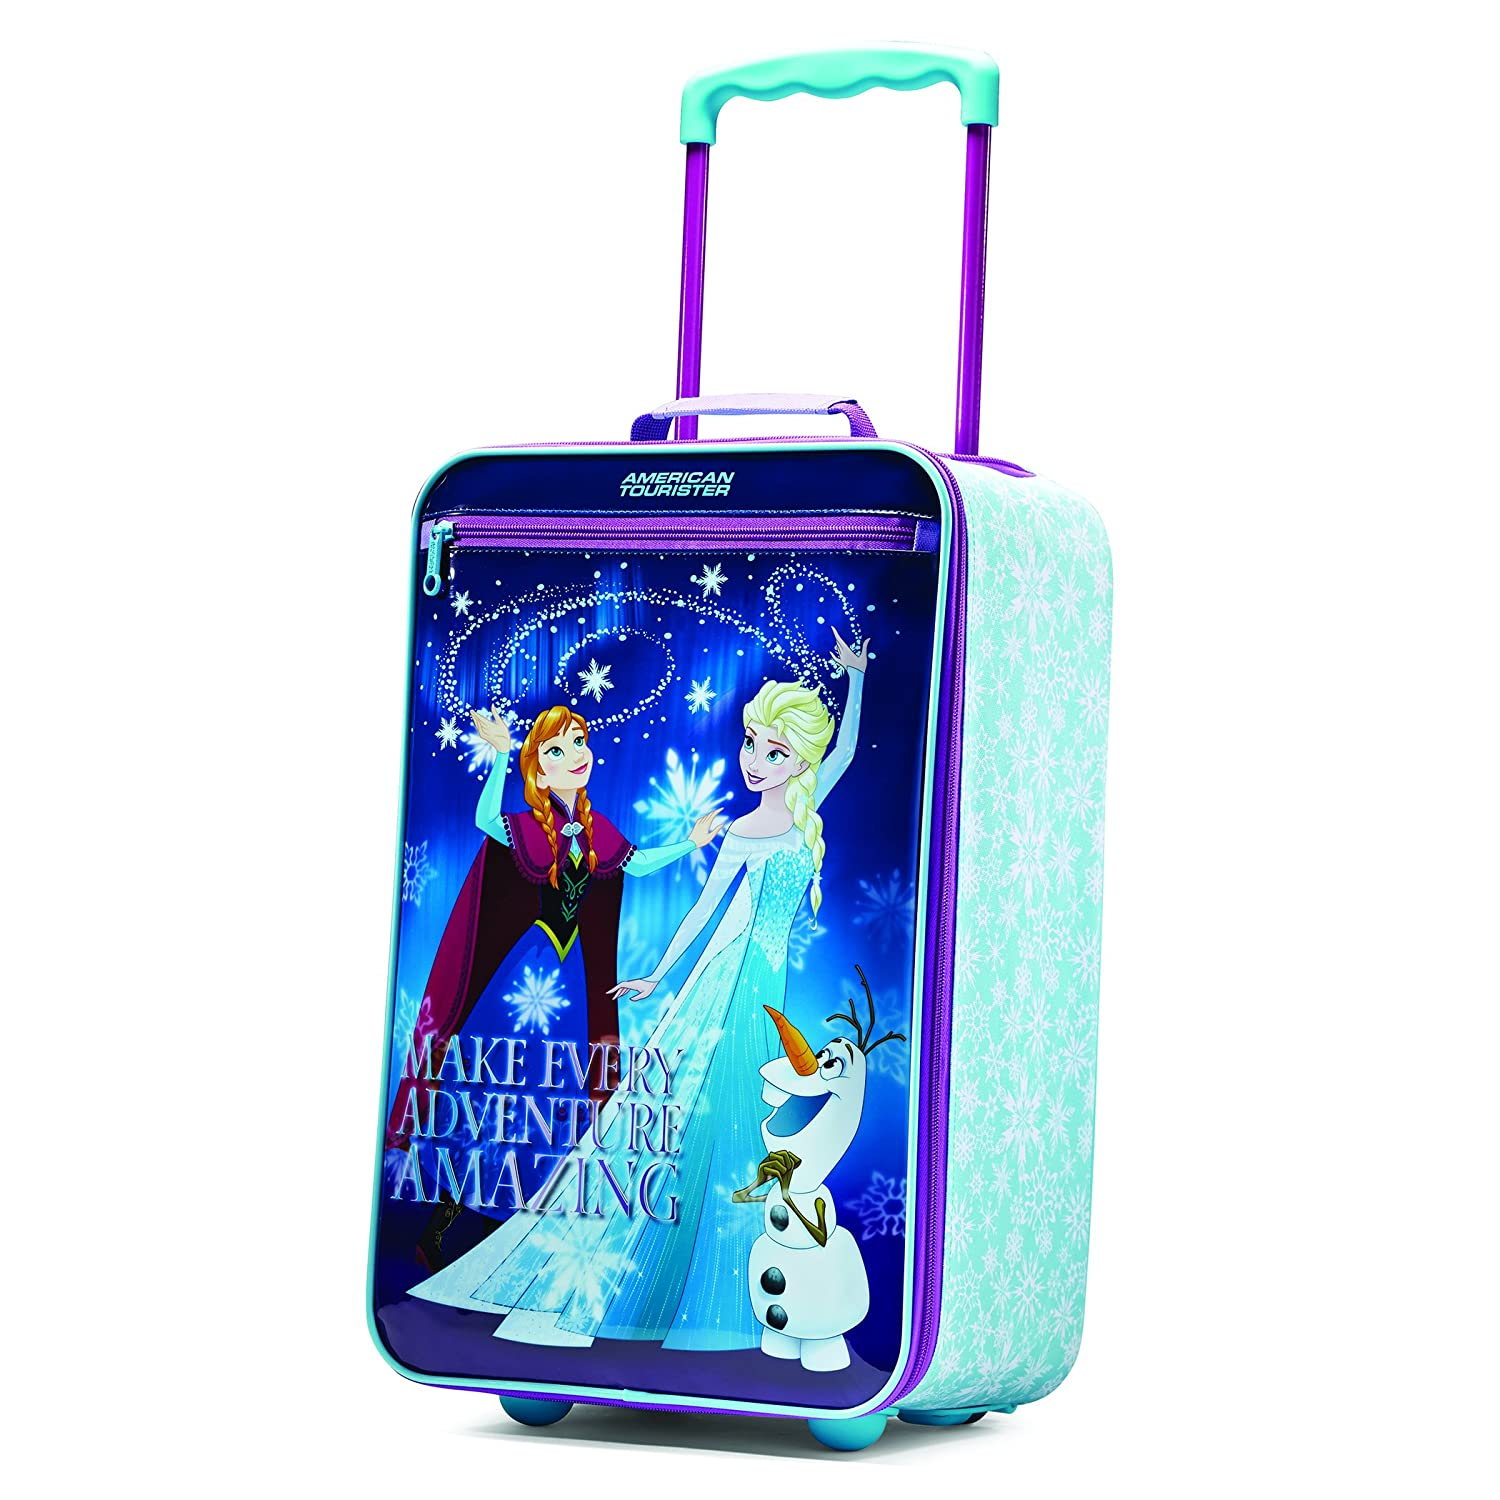 2554a4ed4d4 American Tourister Frozen Upright Softside Suitcase Kids Girls Bag Travel  New